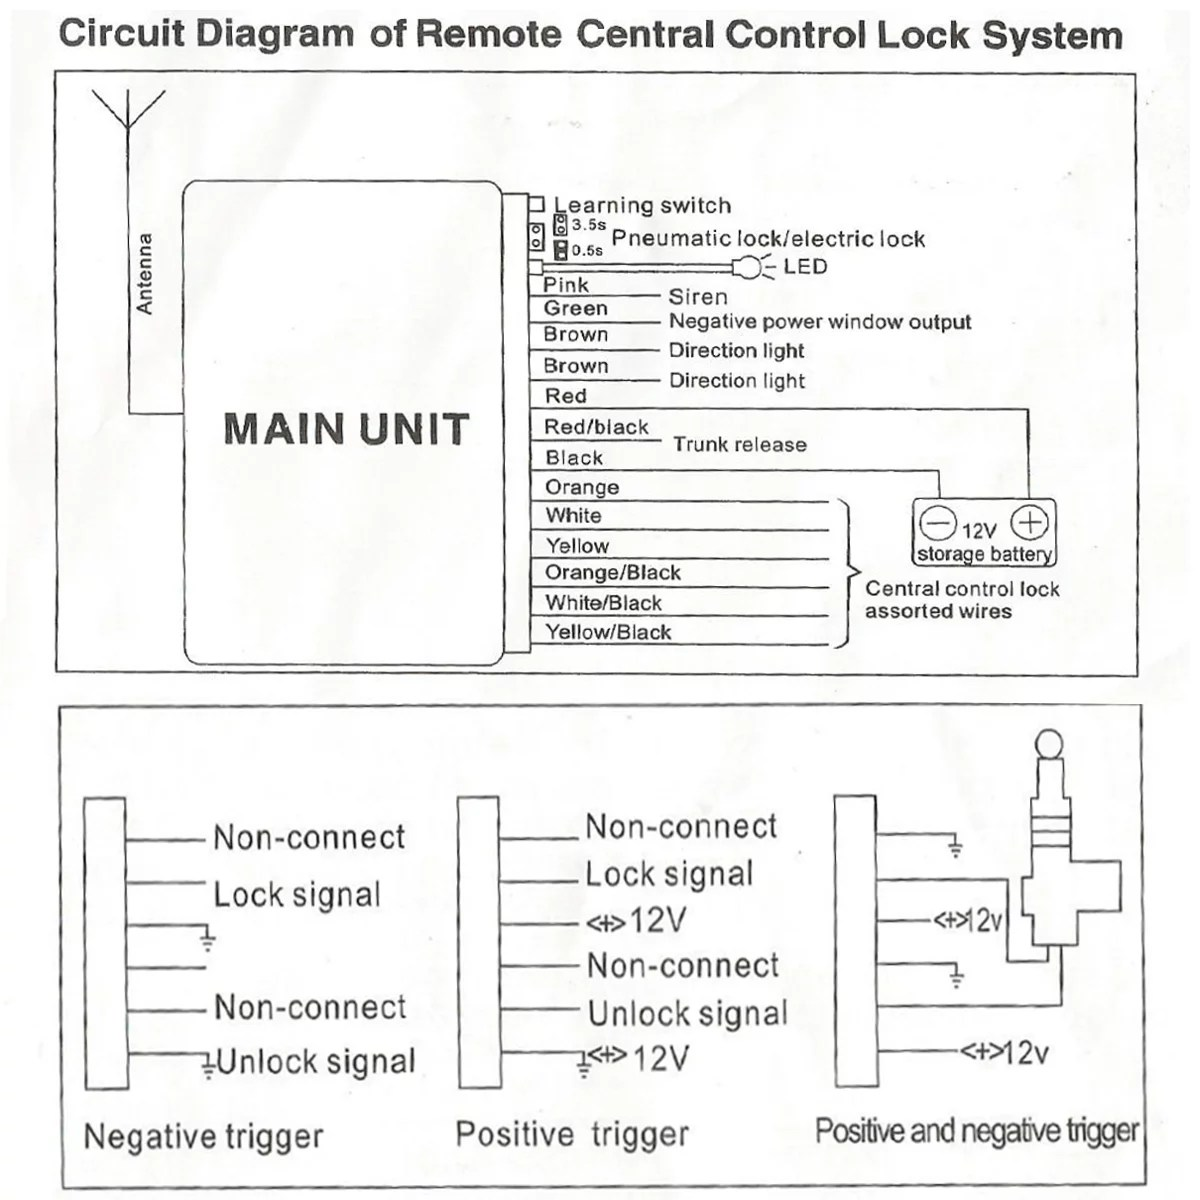 main control unit 2x remotes instructions wiring diagram wiring wiring low voltage under cabinet lighting remote central locking wiring diagram [ 1200 x 1200 Pixel ]